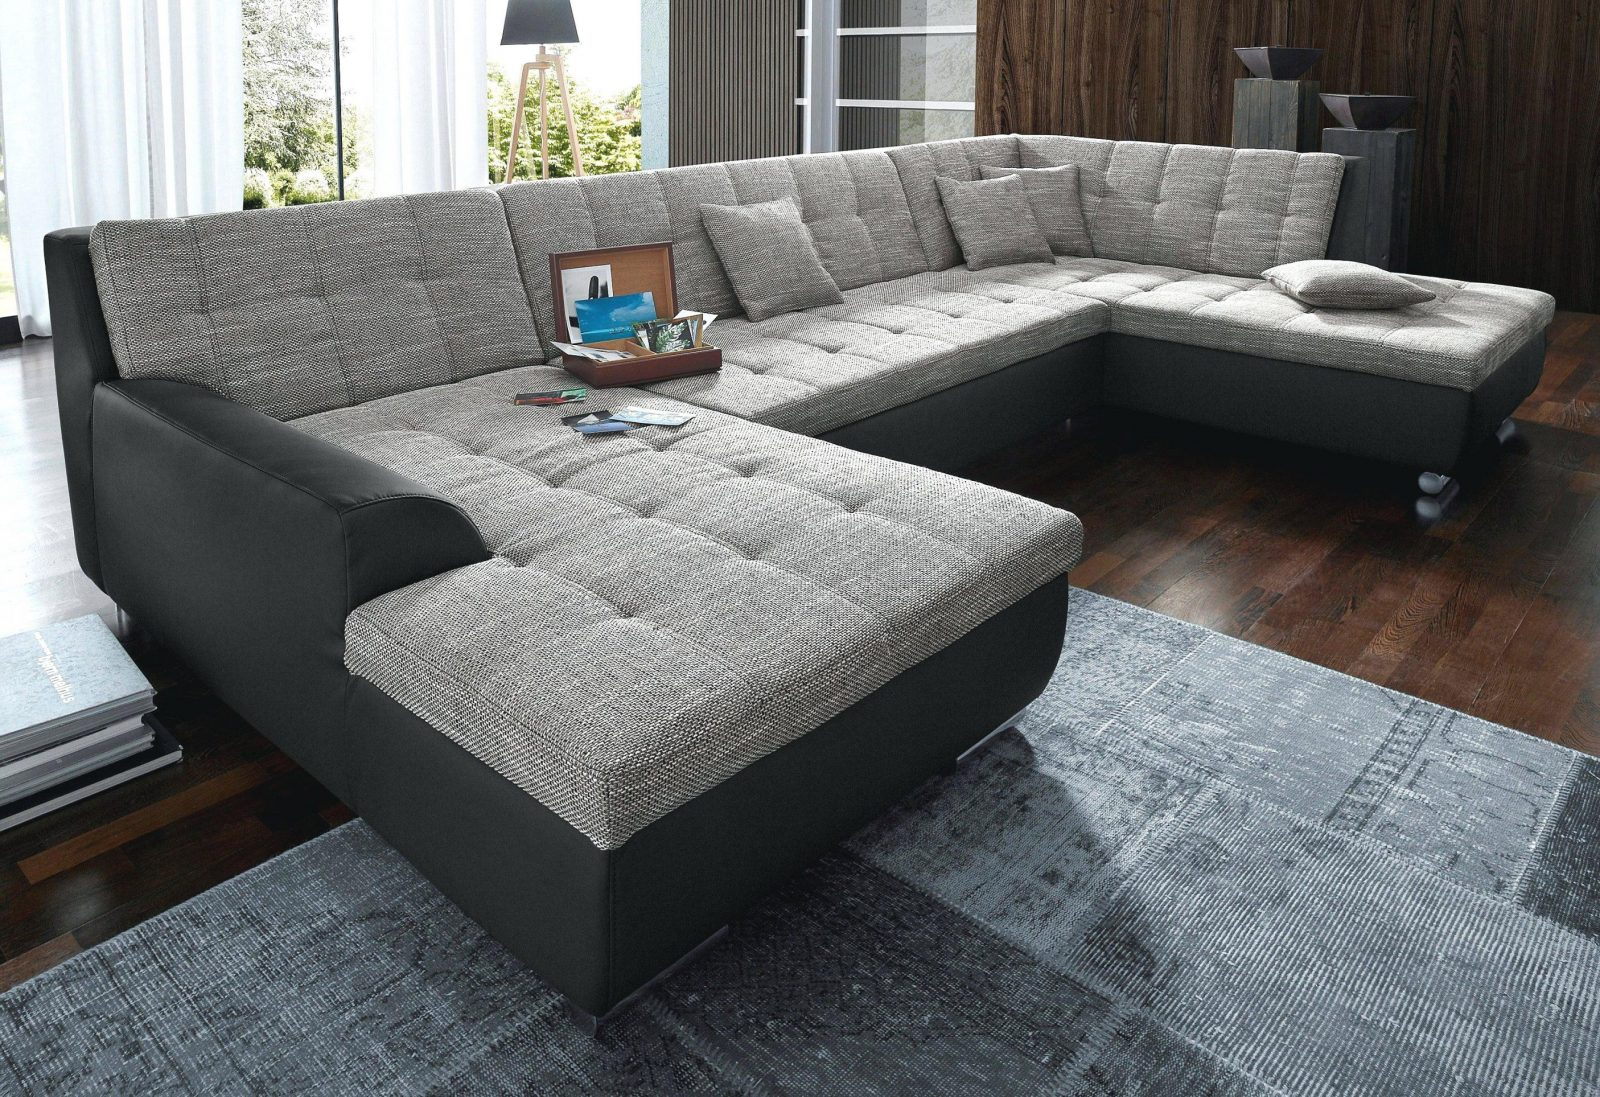 Very Attractive Otto Xxl Sofa Zithoek Xxl Naar Keuze Met von Otto Couch Mit Schlaffunktion Photo